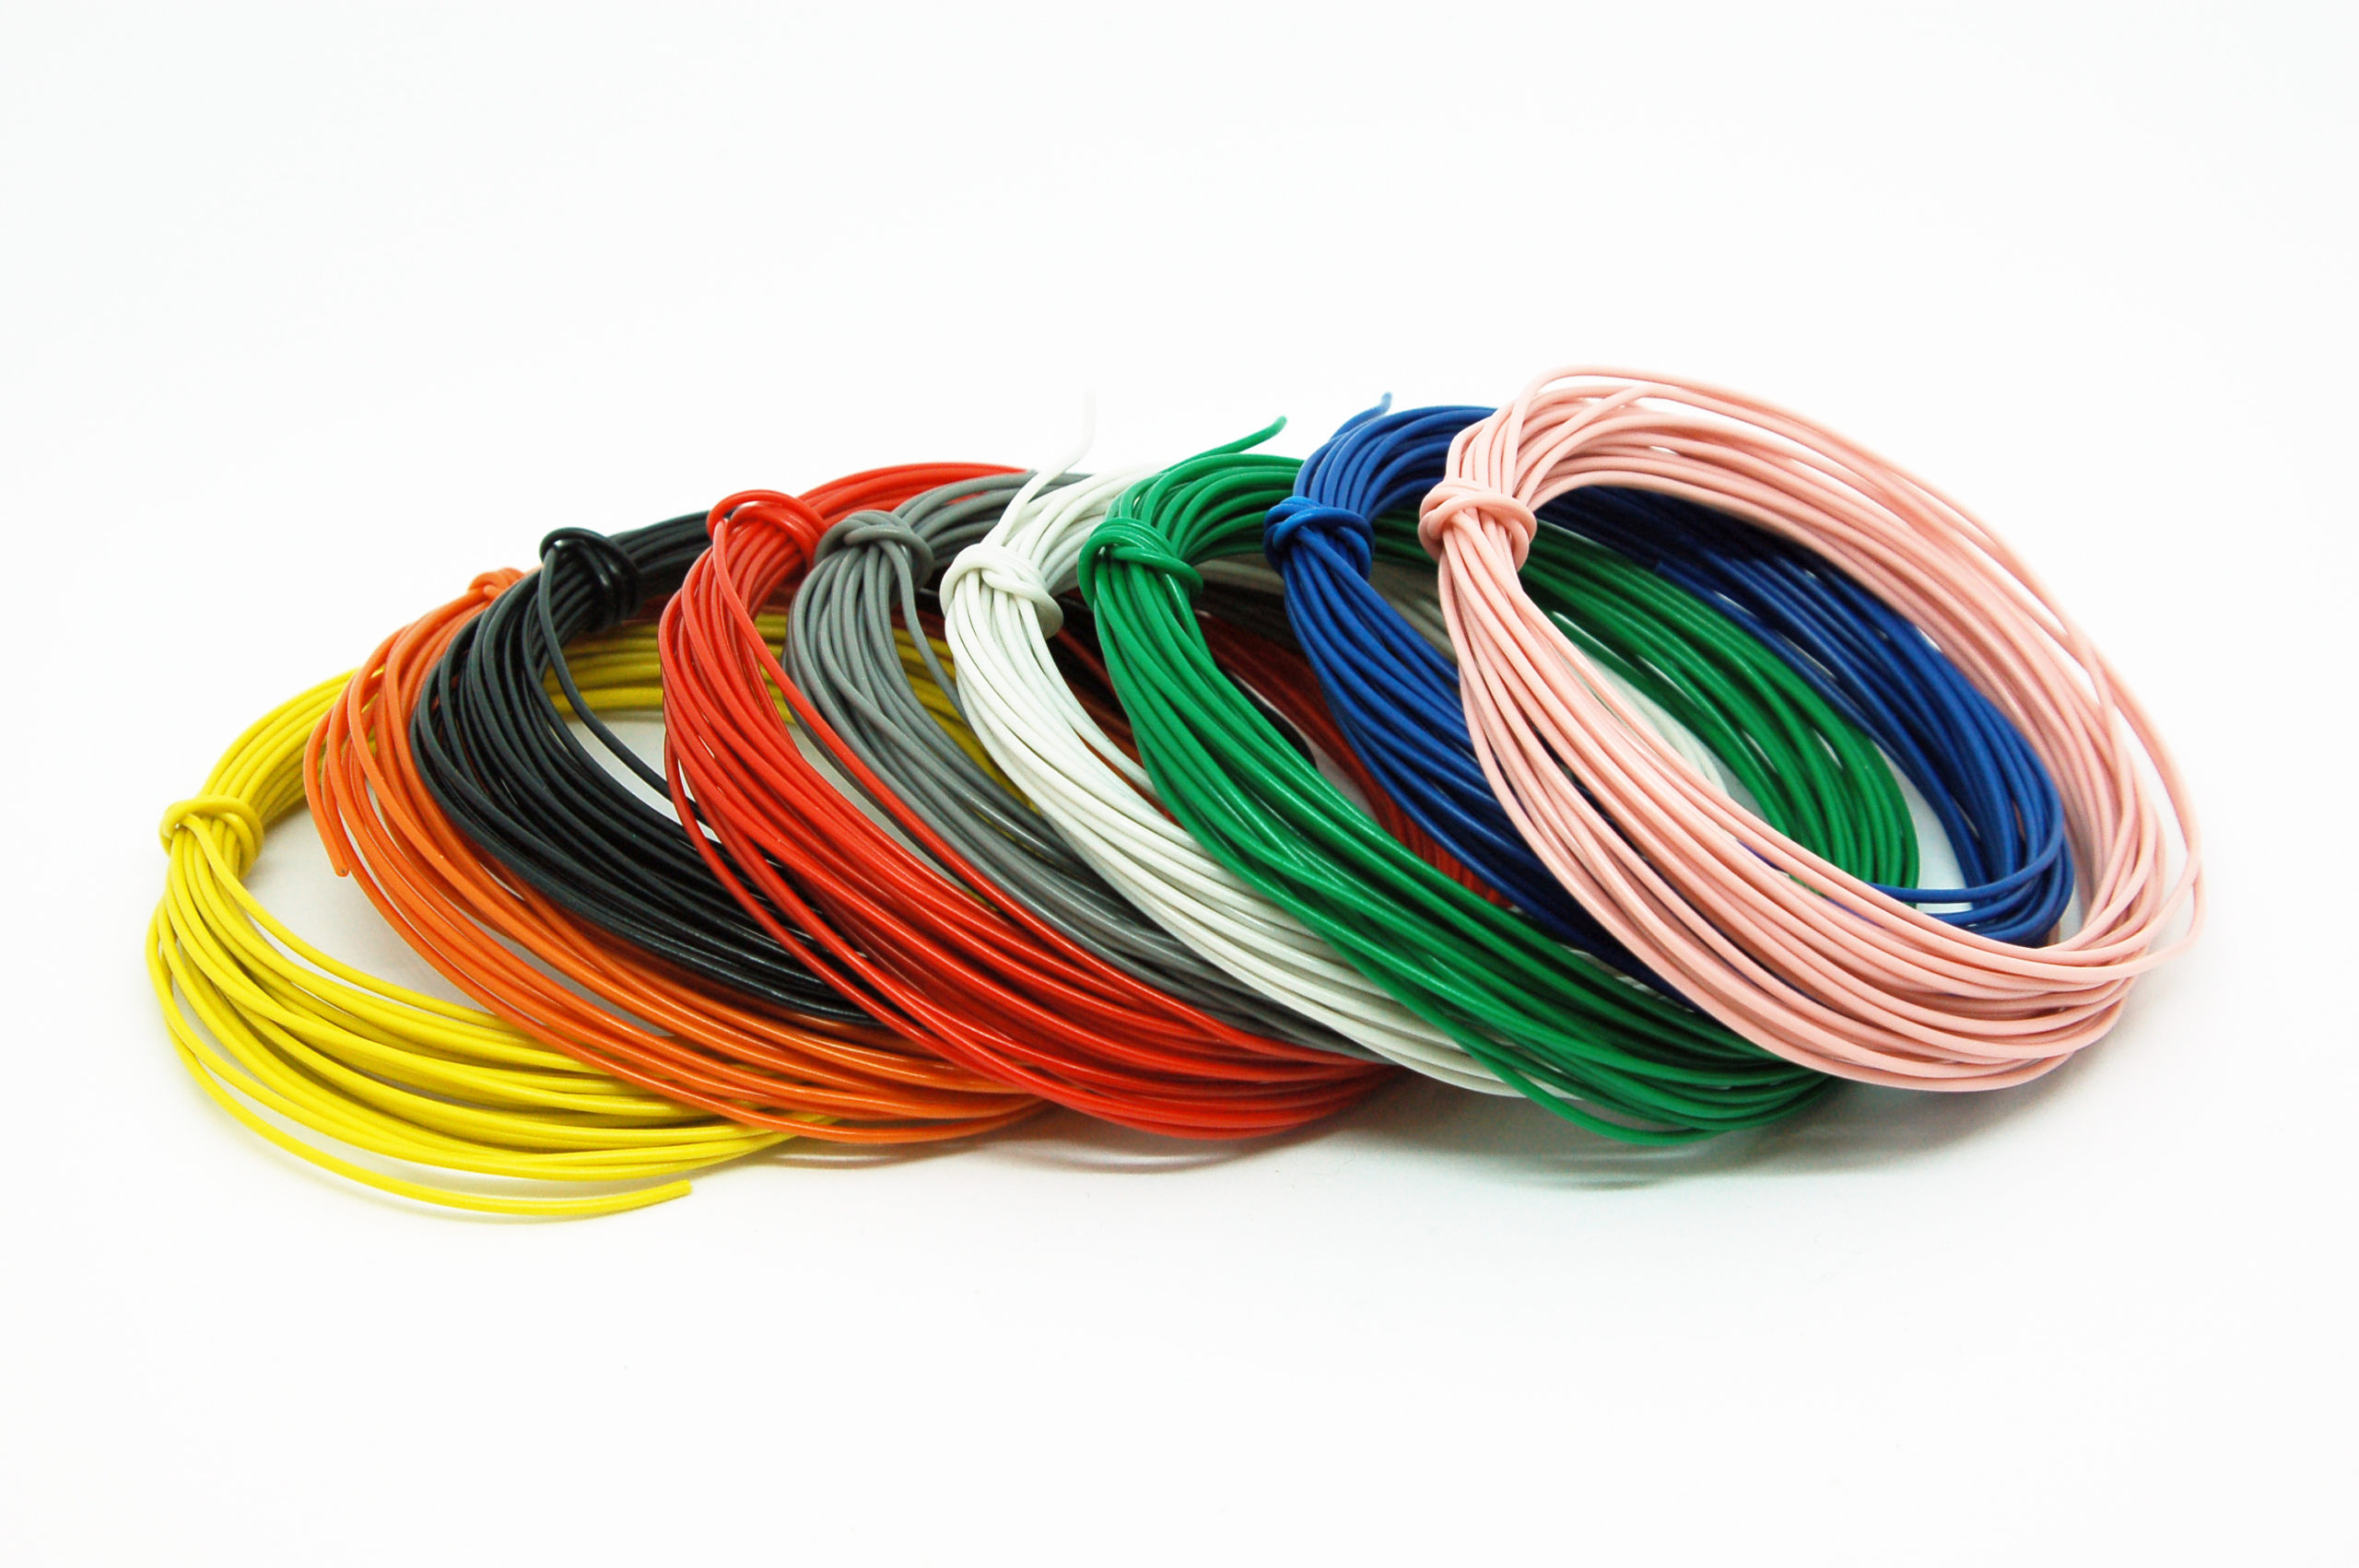 7/0.2mm wire in 5m length